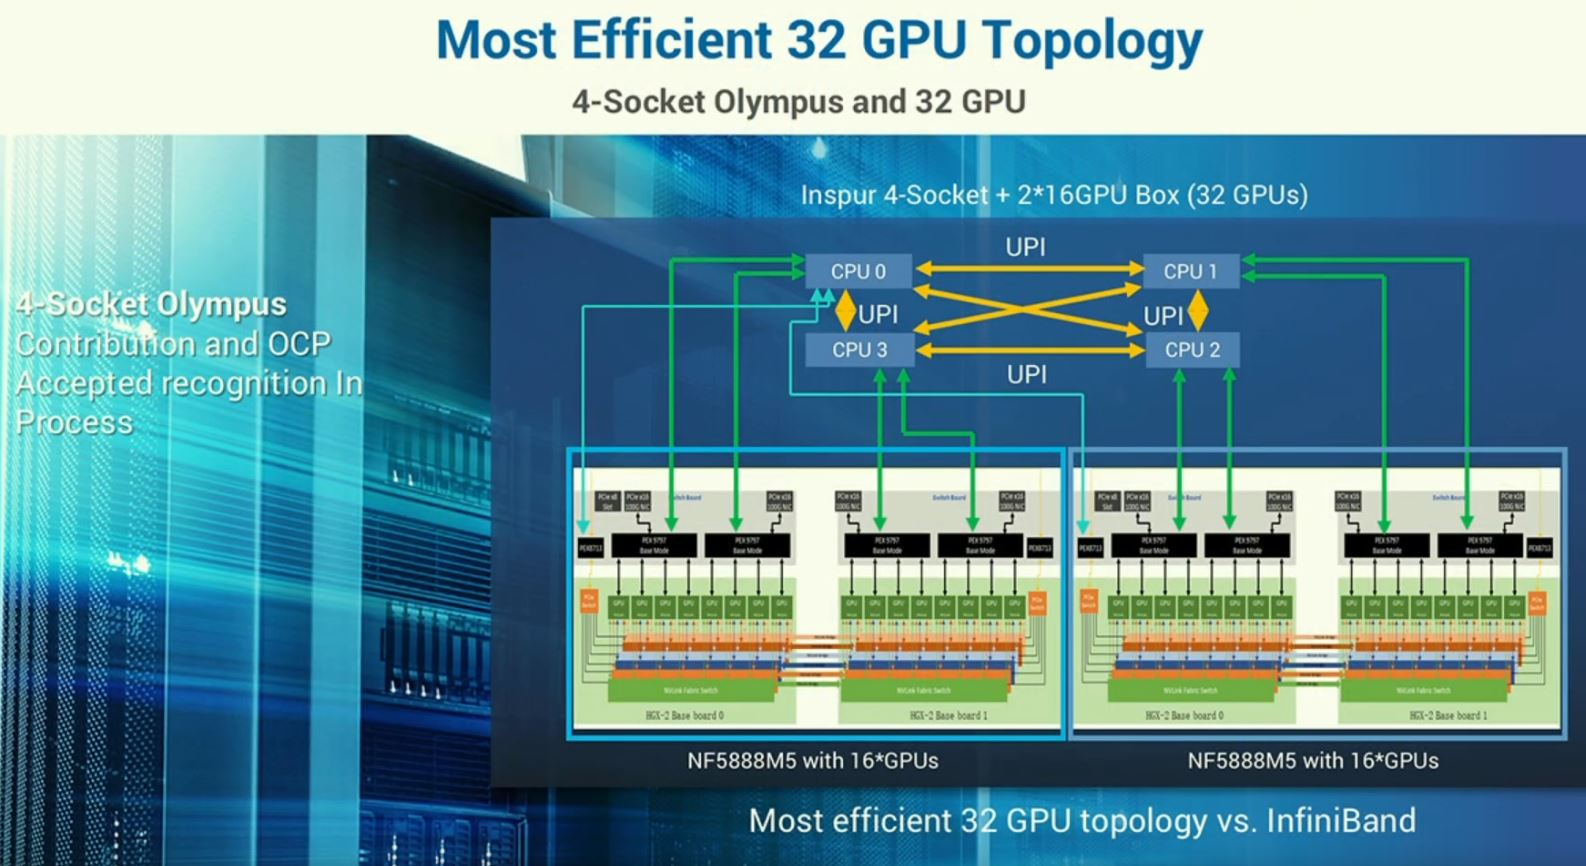 Inspur 4 Socket Olympus With GPU Box 32 GPU Topology At OCP Summit 2019